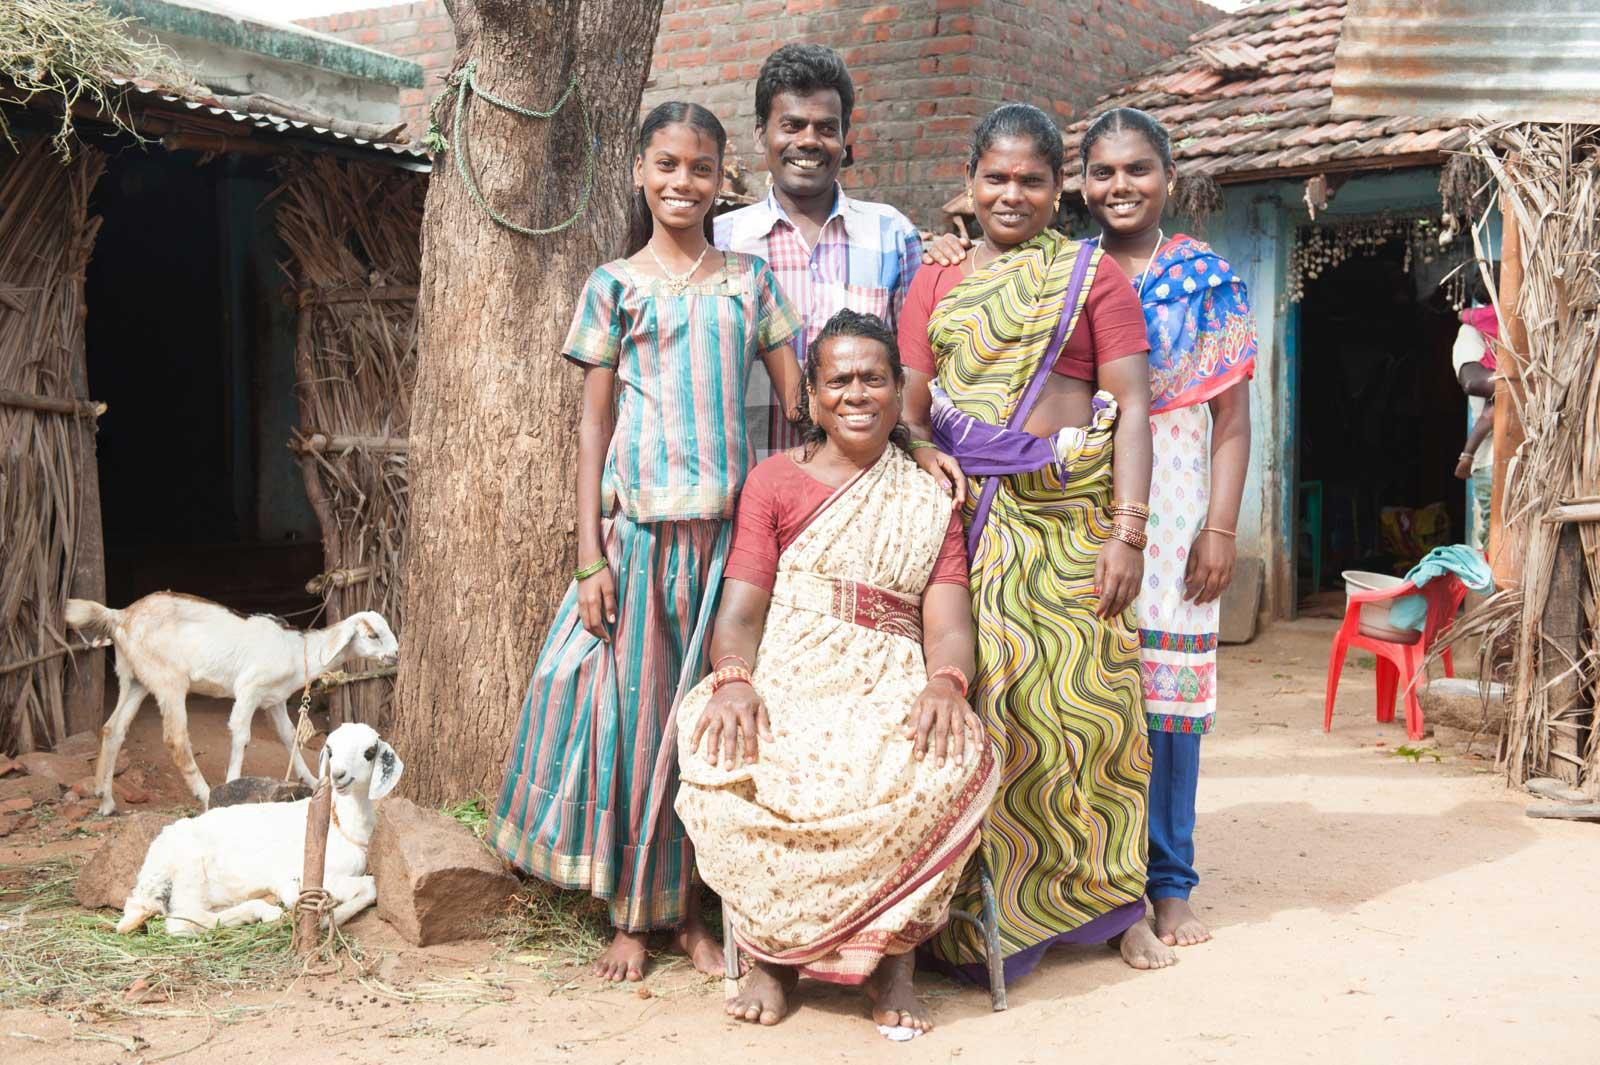 Annandhi with her family in front of their house